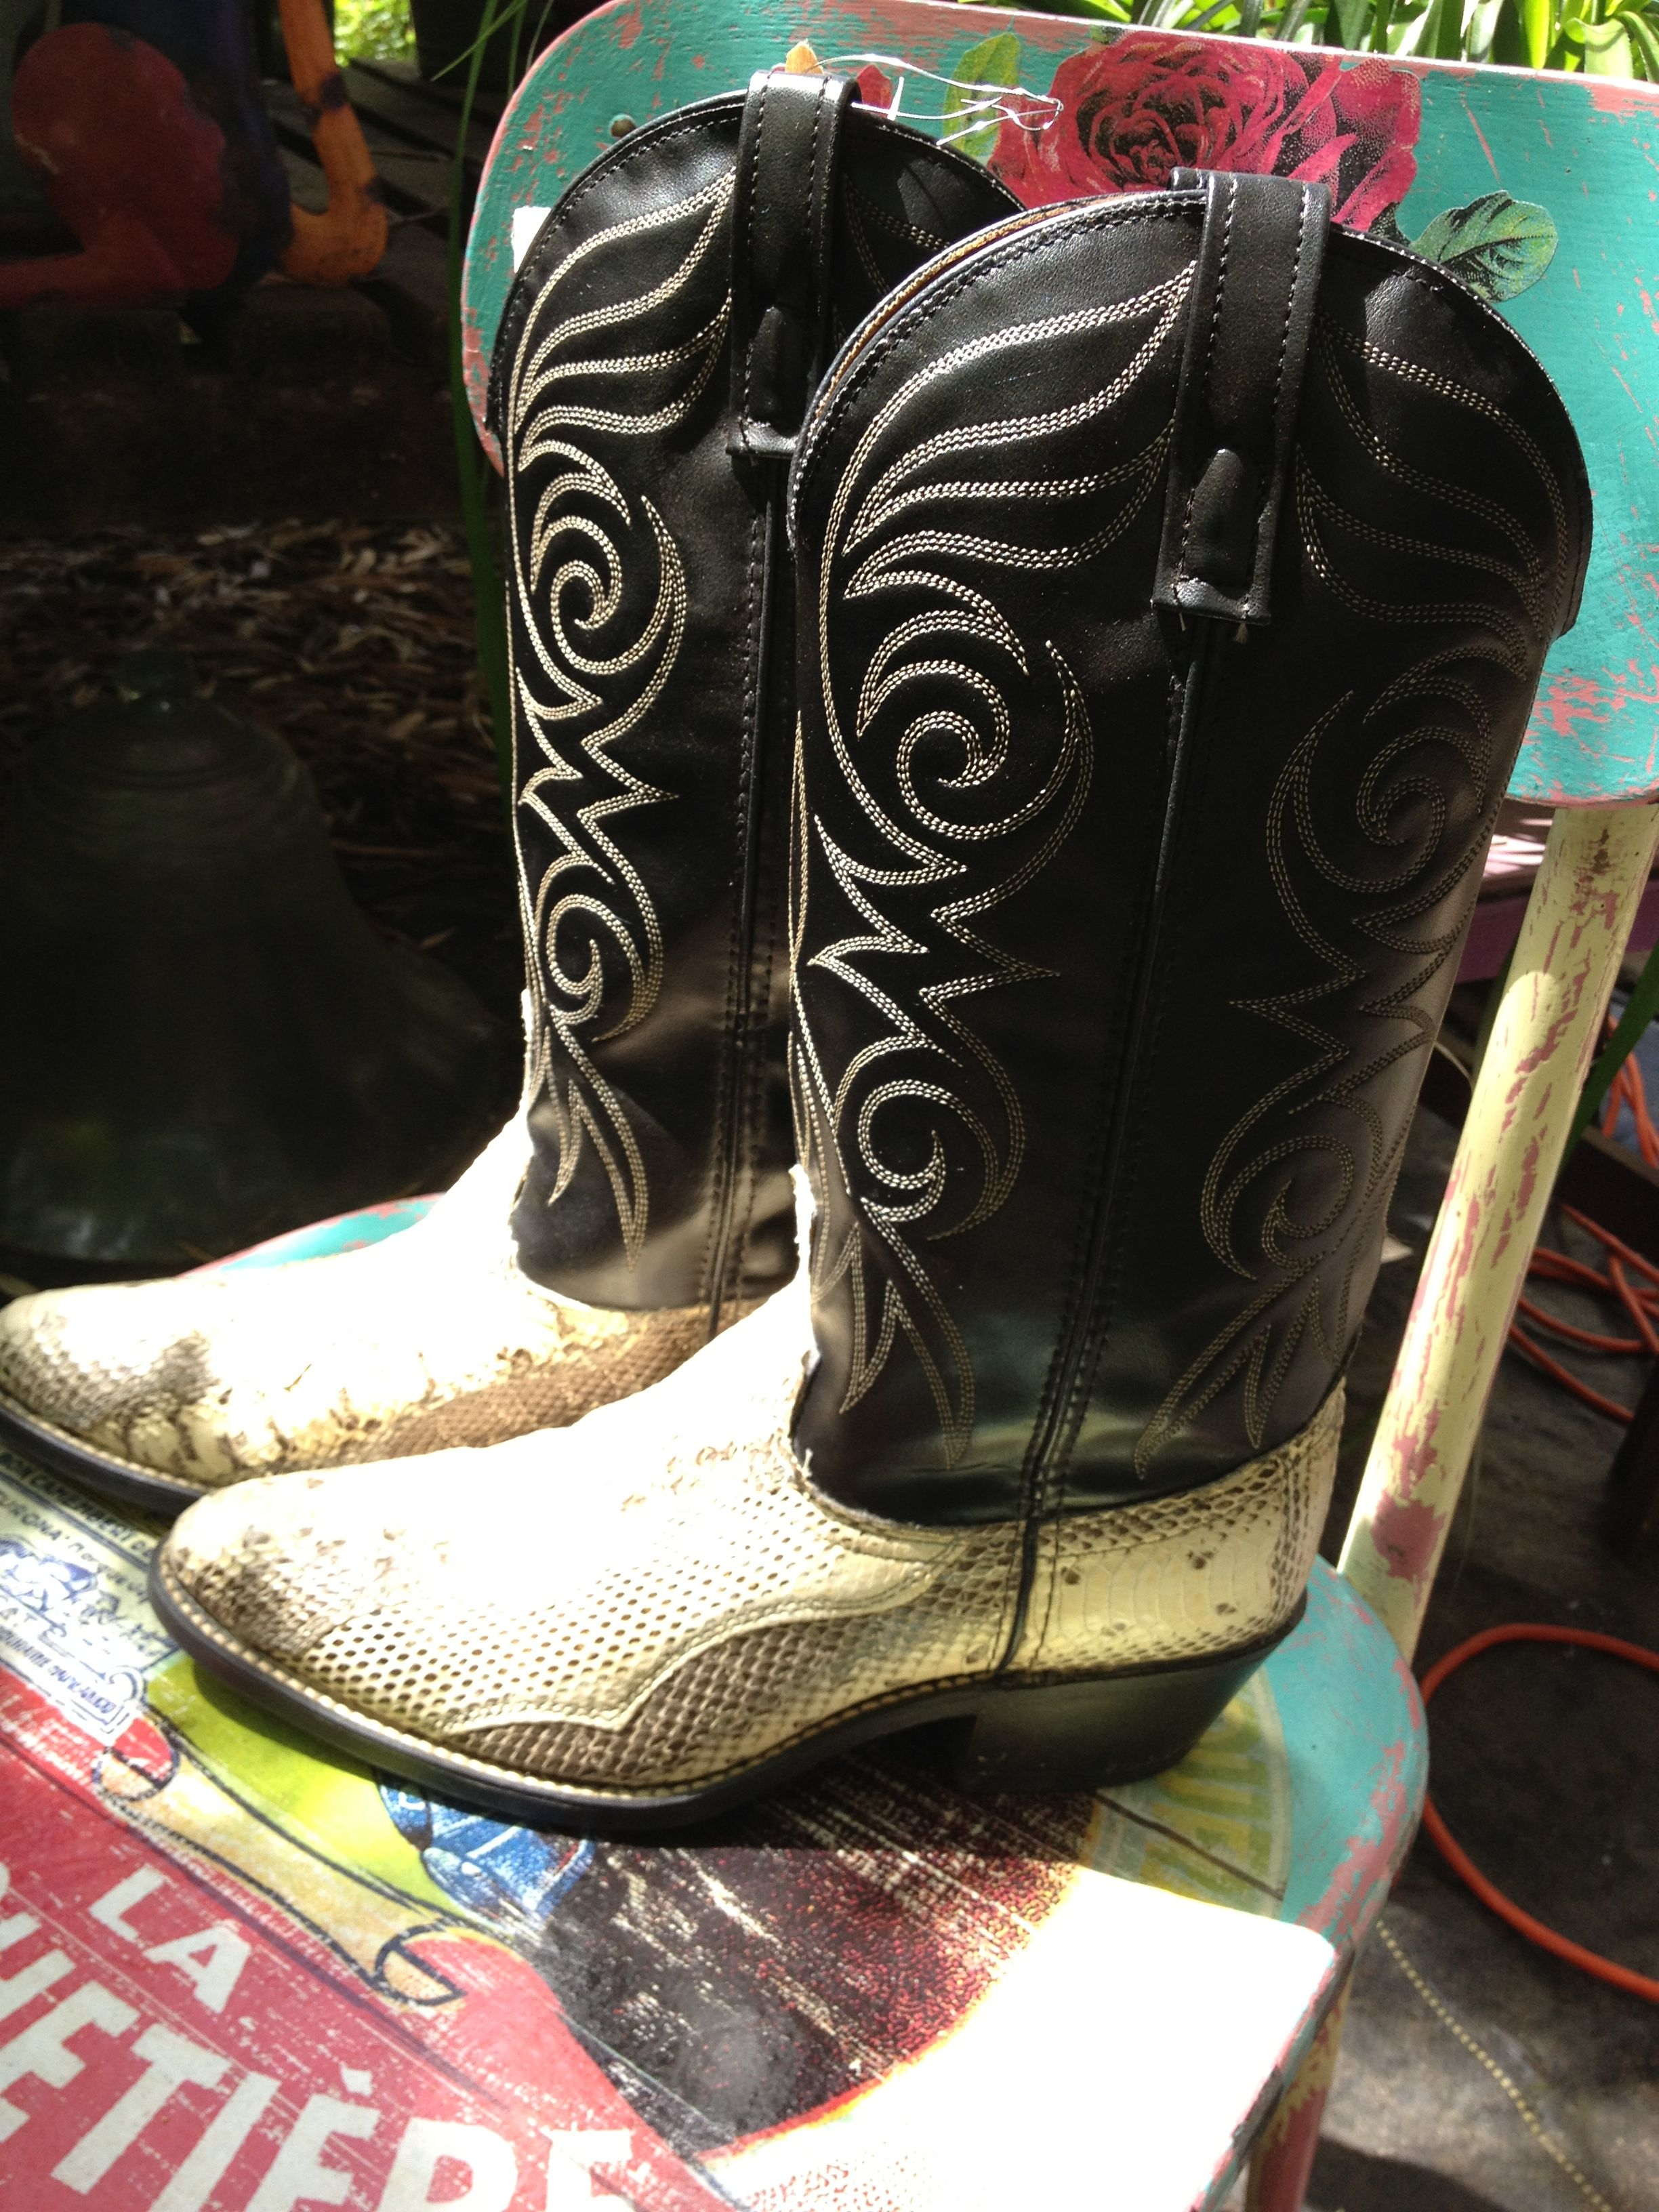 #Cowboy Boots by Rio Grande  boot number 3 Very soft leather and two tone snake skin boots Men's size 8 D $180.00 Like us @ Tollen Farm on Facebook